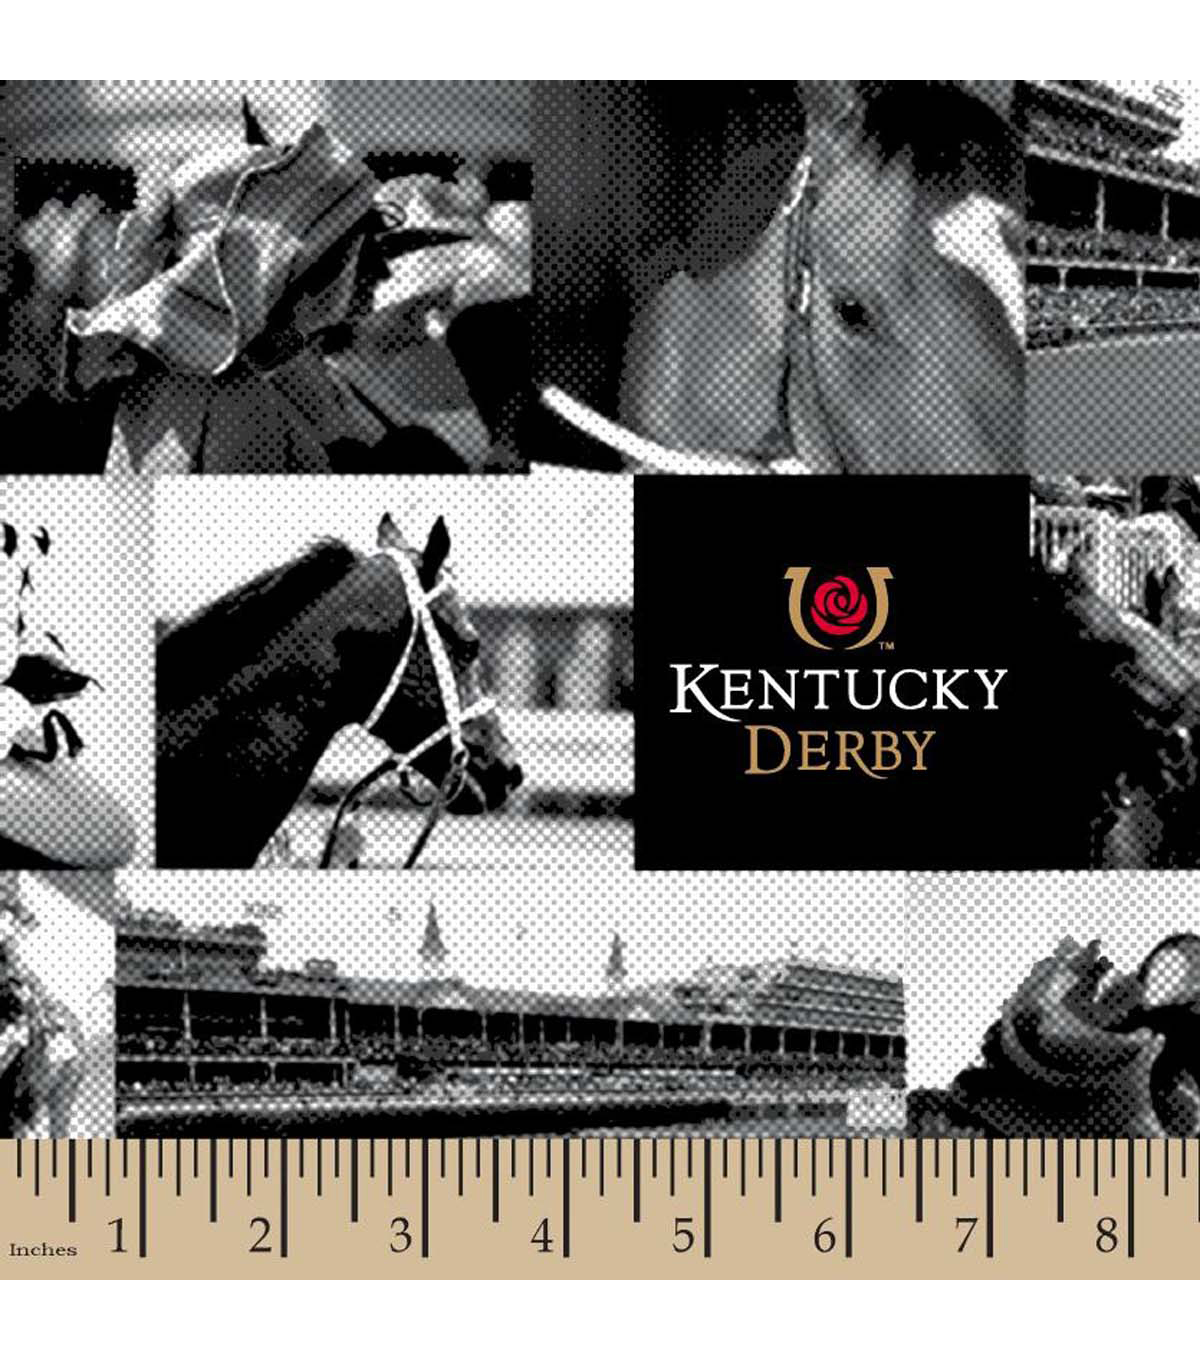 Kentucky Derby A Day At The Races Cotton Fabric